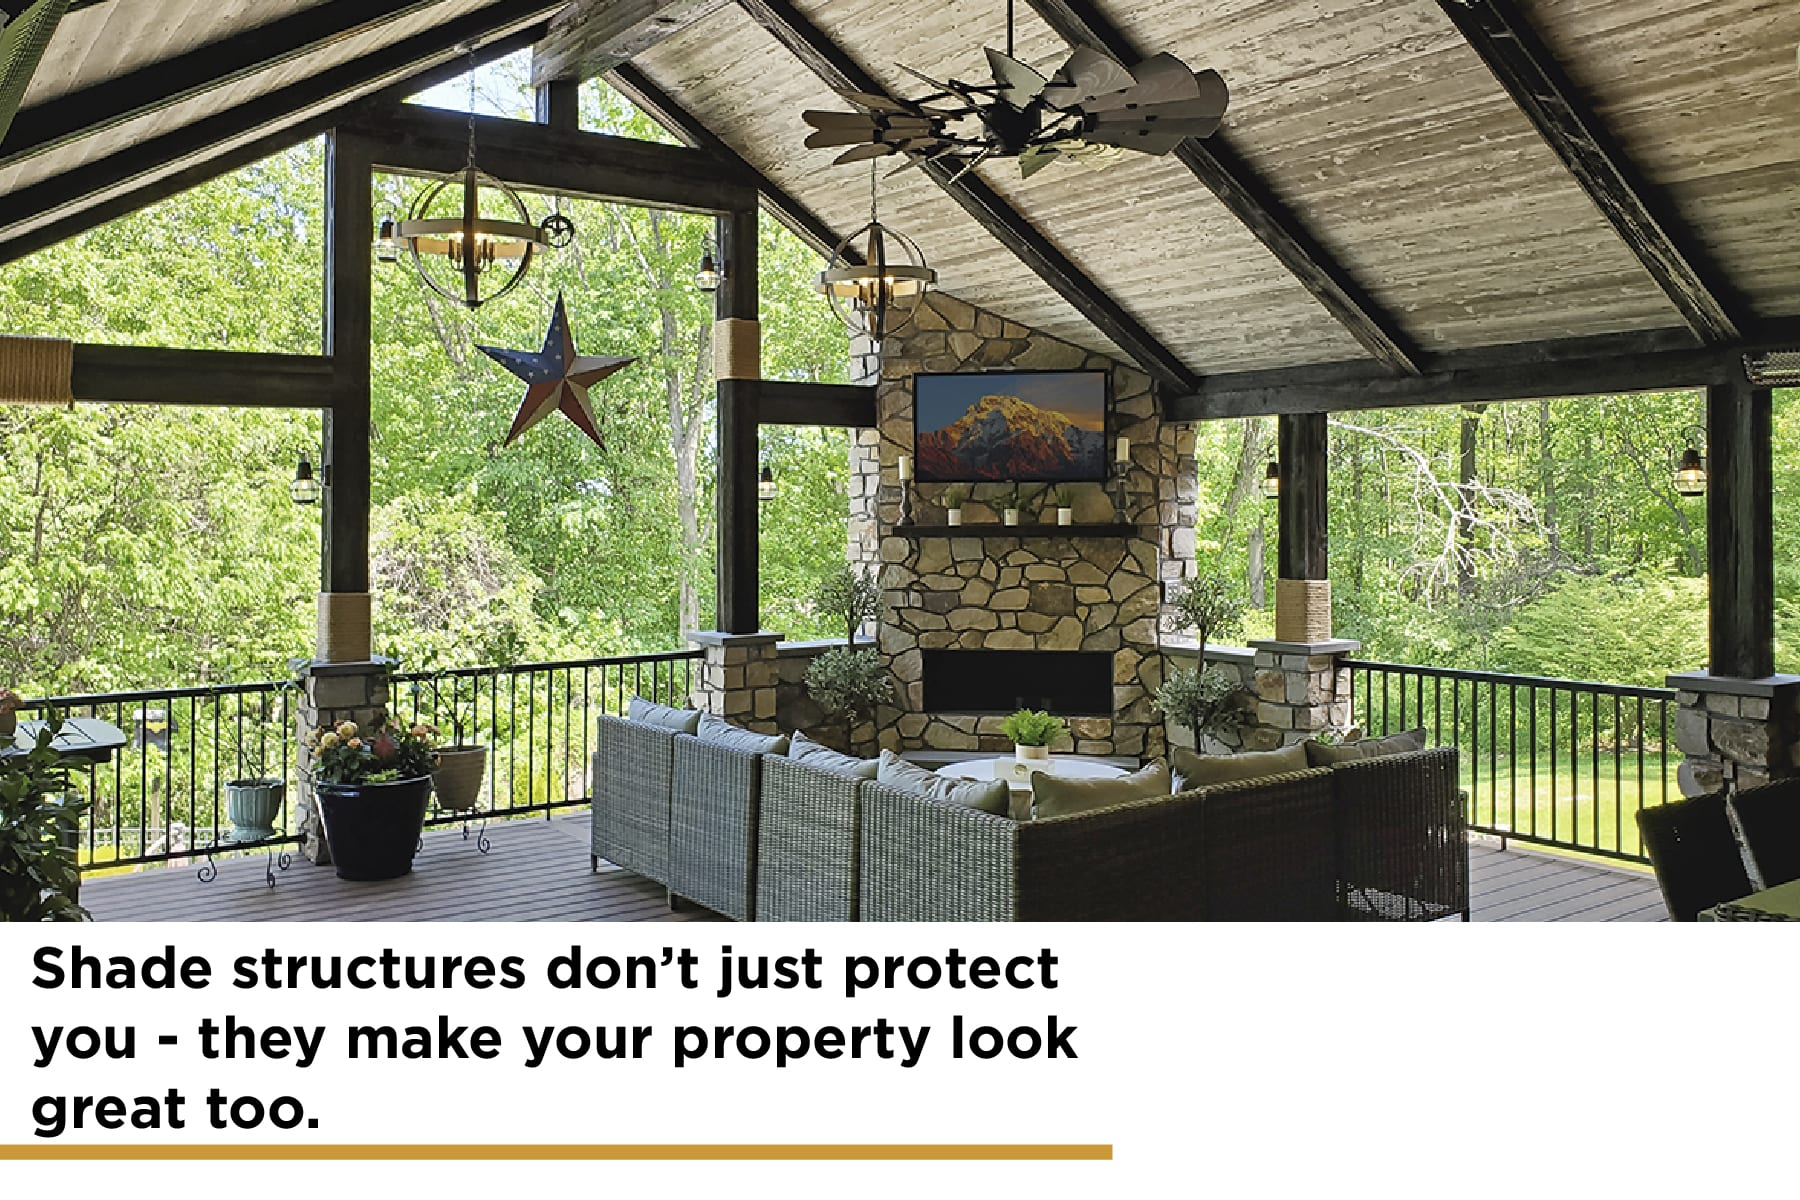 shade structures protect your deck and make your property look great